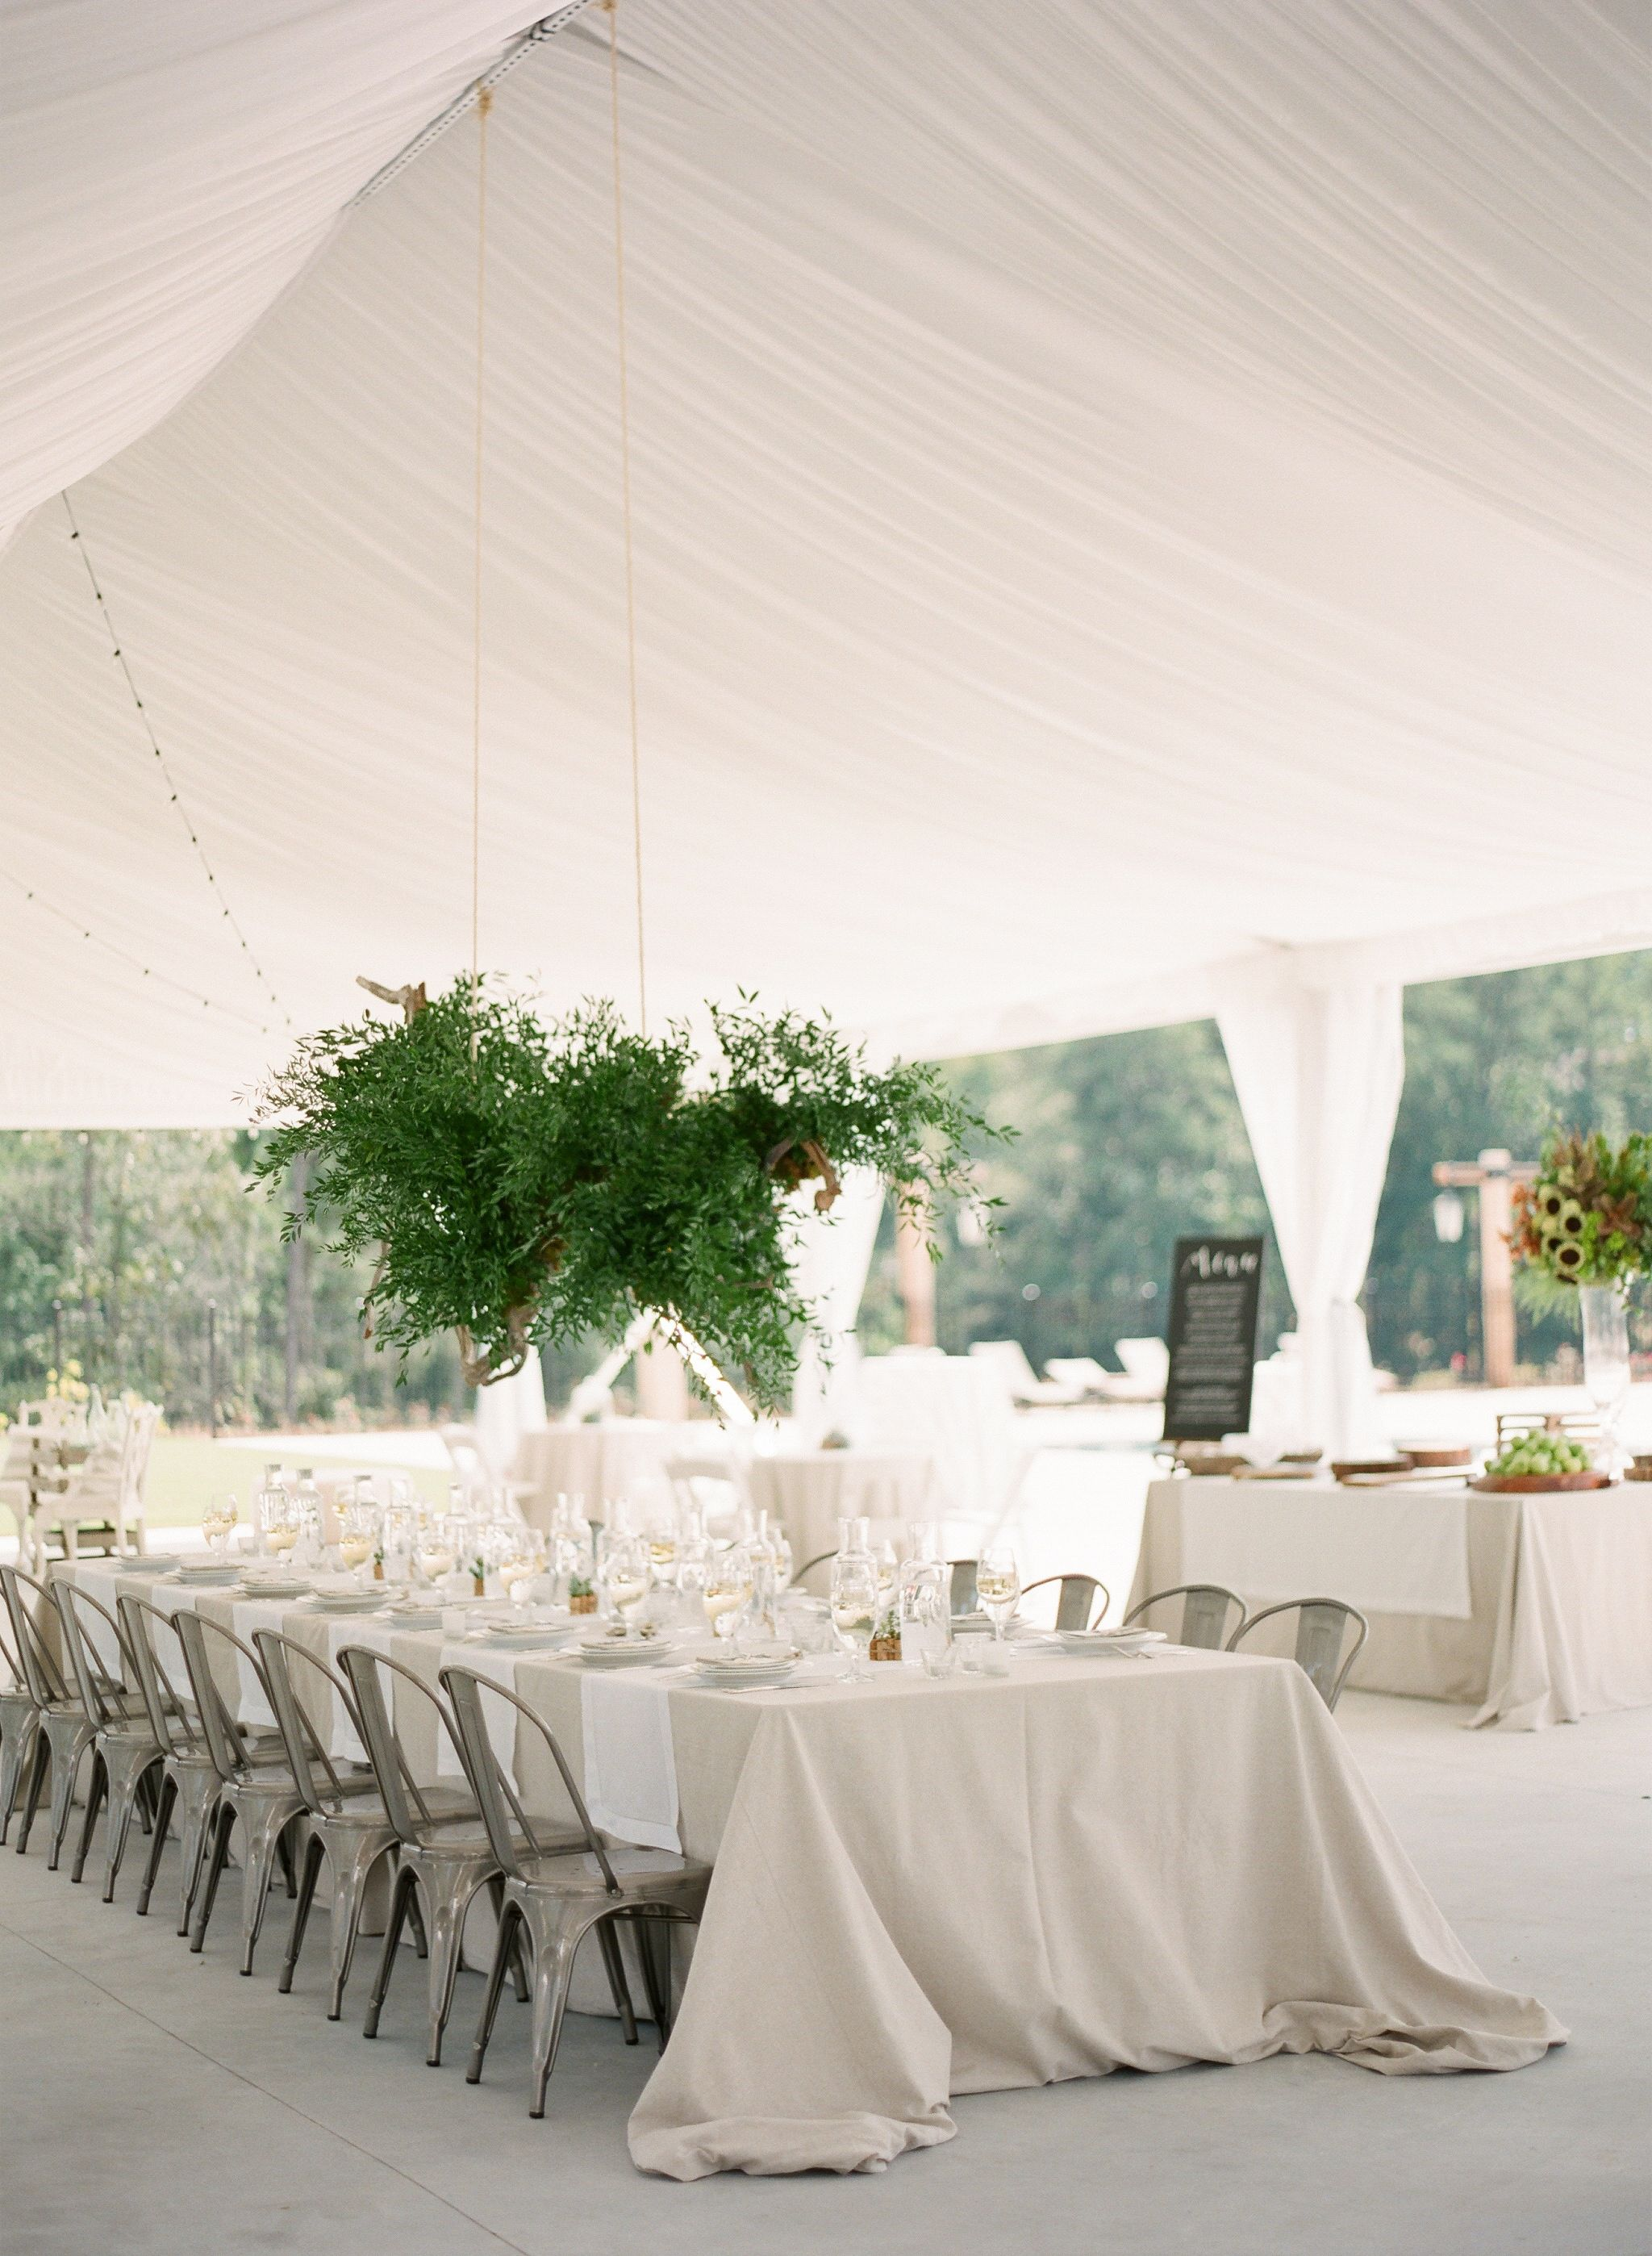 Chic Modern Event Design At Foxhall Resort With D Tent Spectacular Hanging Fl Display